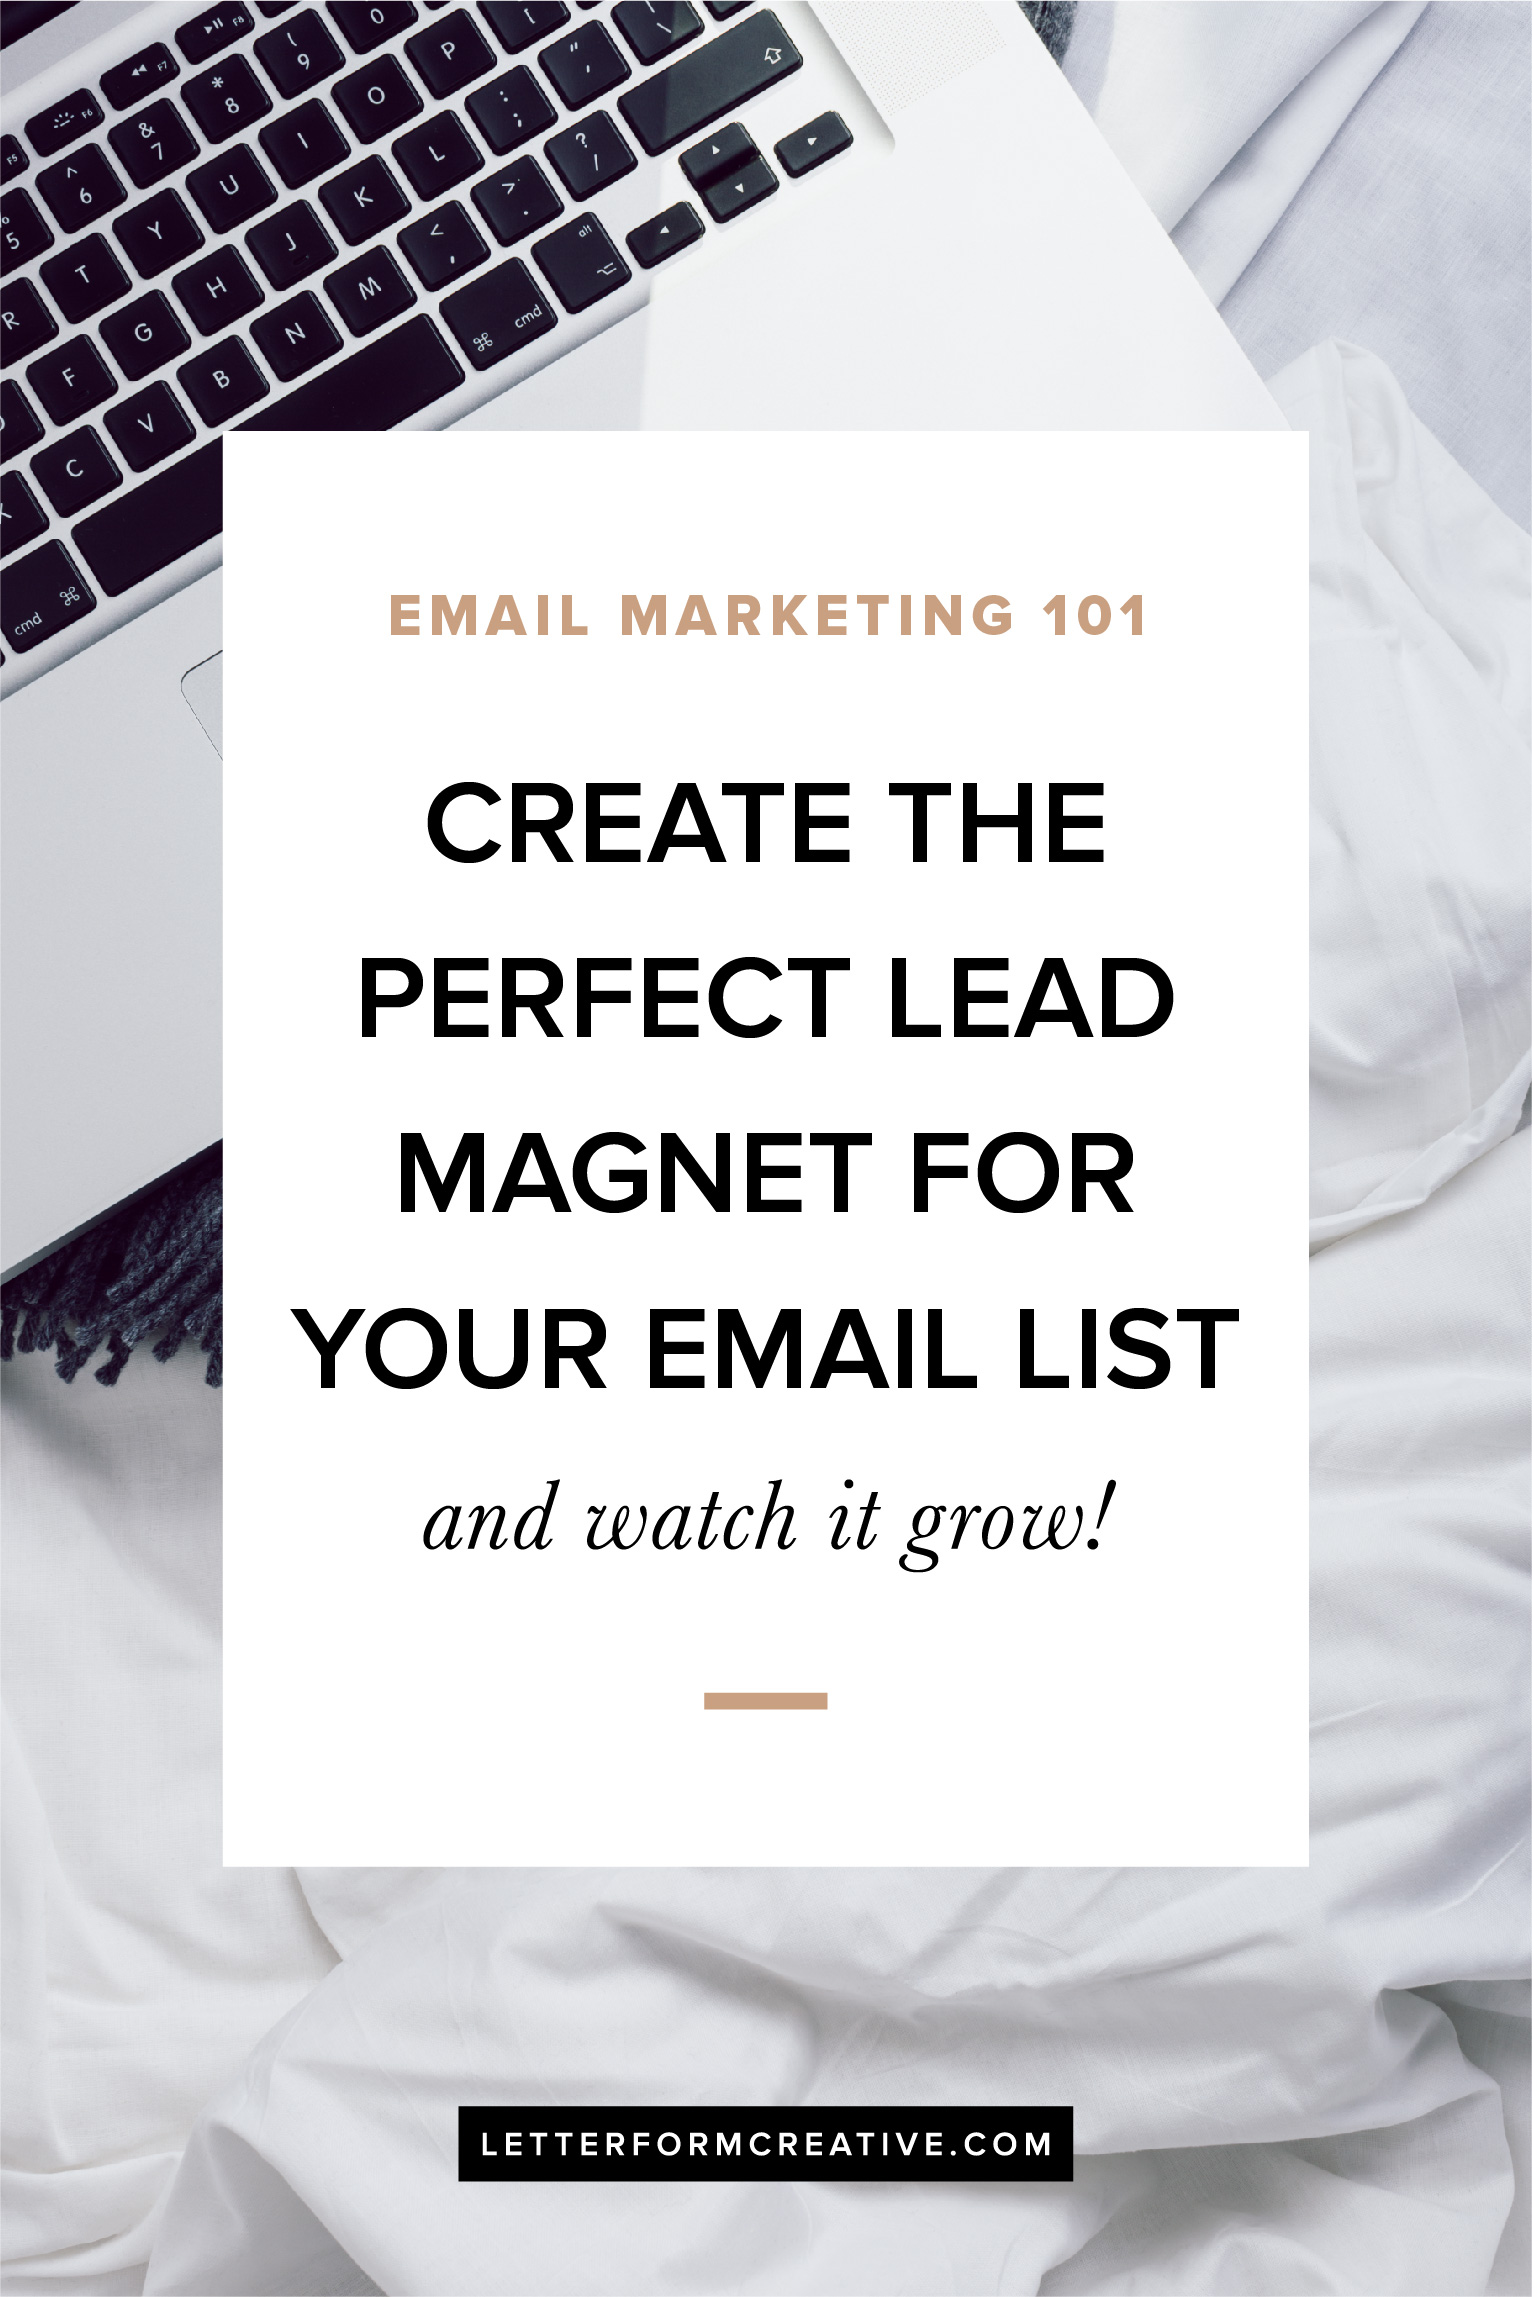 All small business owners need an email list! Not sure how to grow yours? You need a lead magnet! Find out what a lead magnet is, why you need one, and how to create it. With the perfect freebie offer you'll have subscribers on your list in no time!